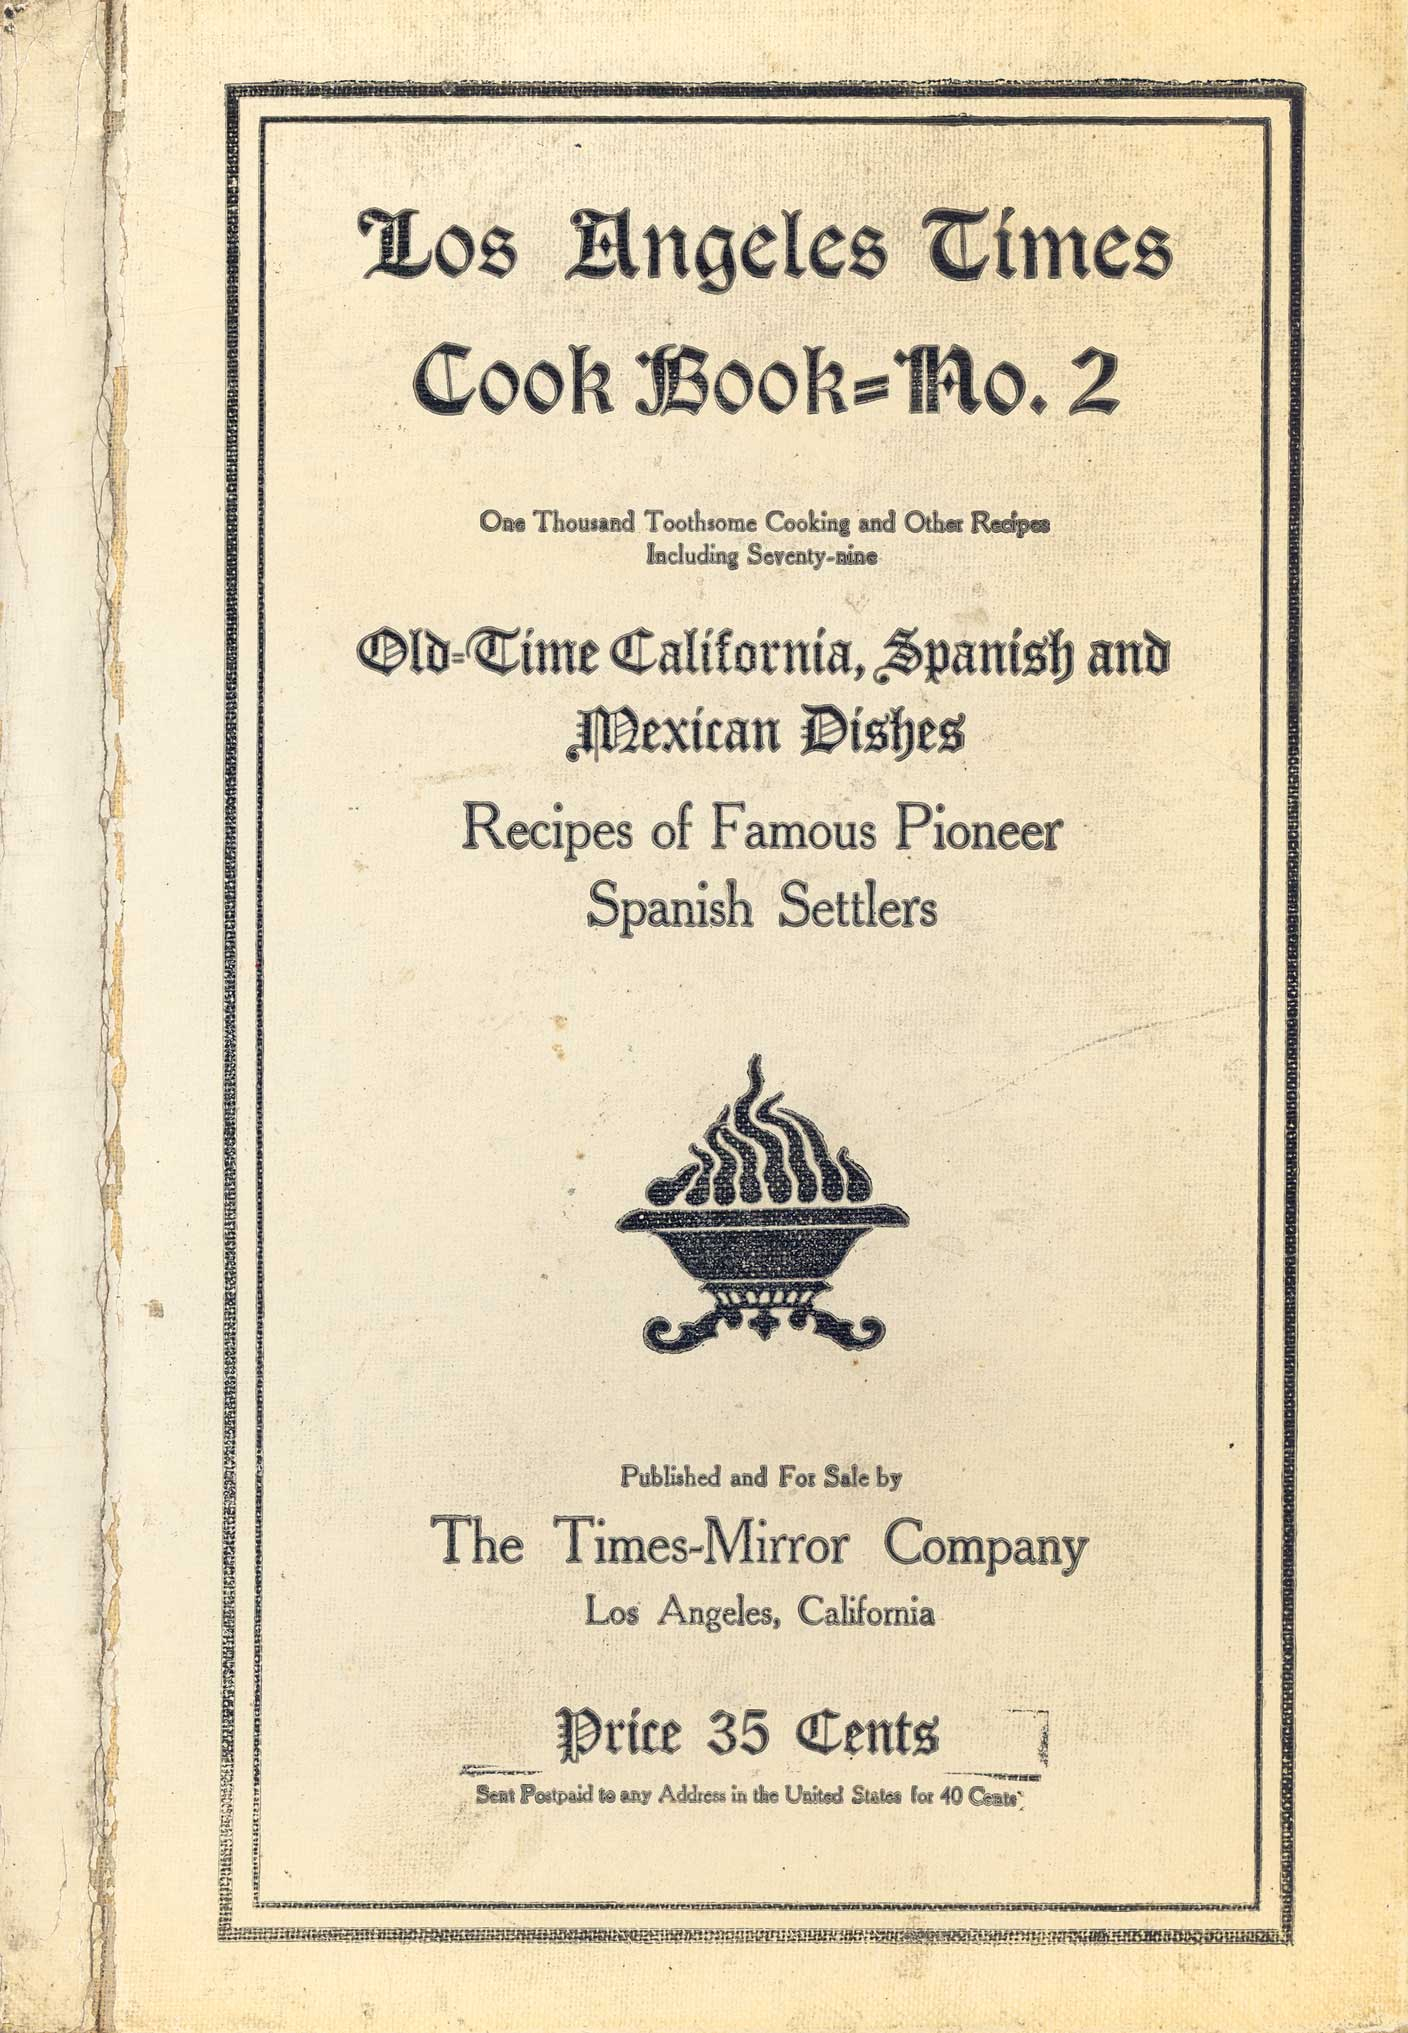 The Times cook book, no. 2 : 957 cooking and other recipes ...